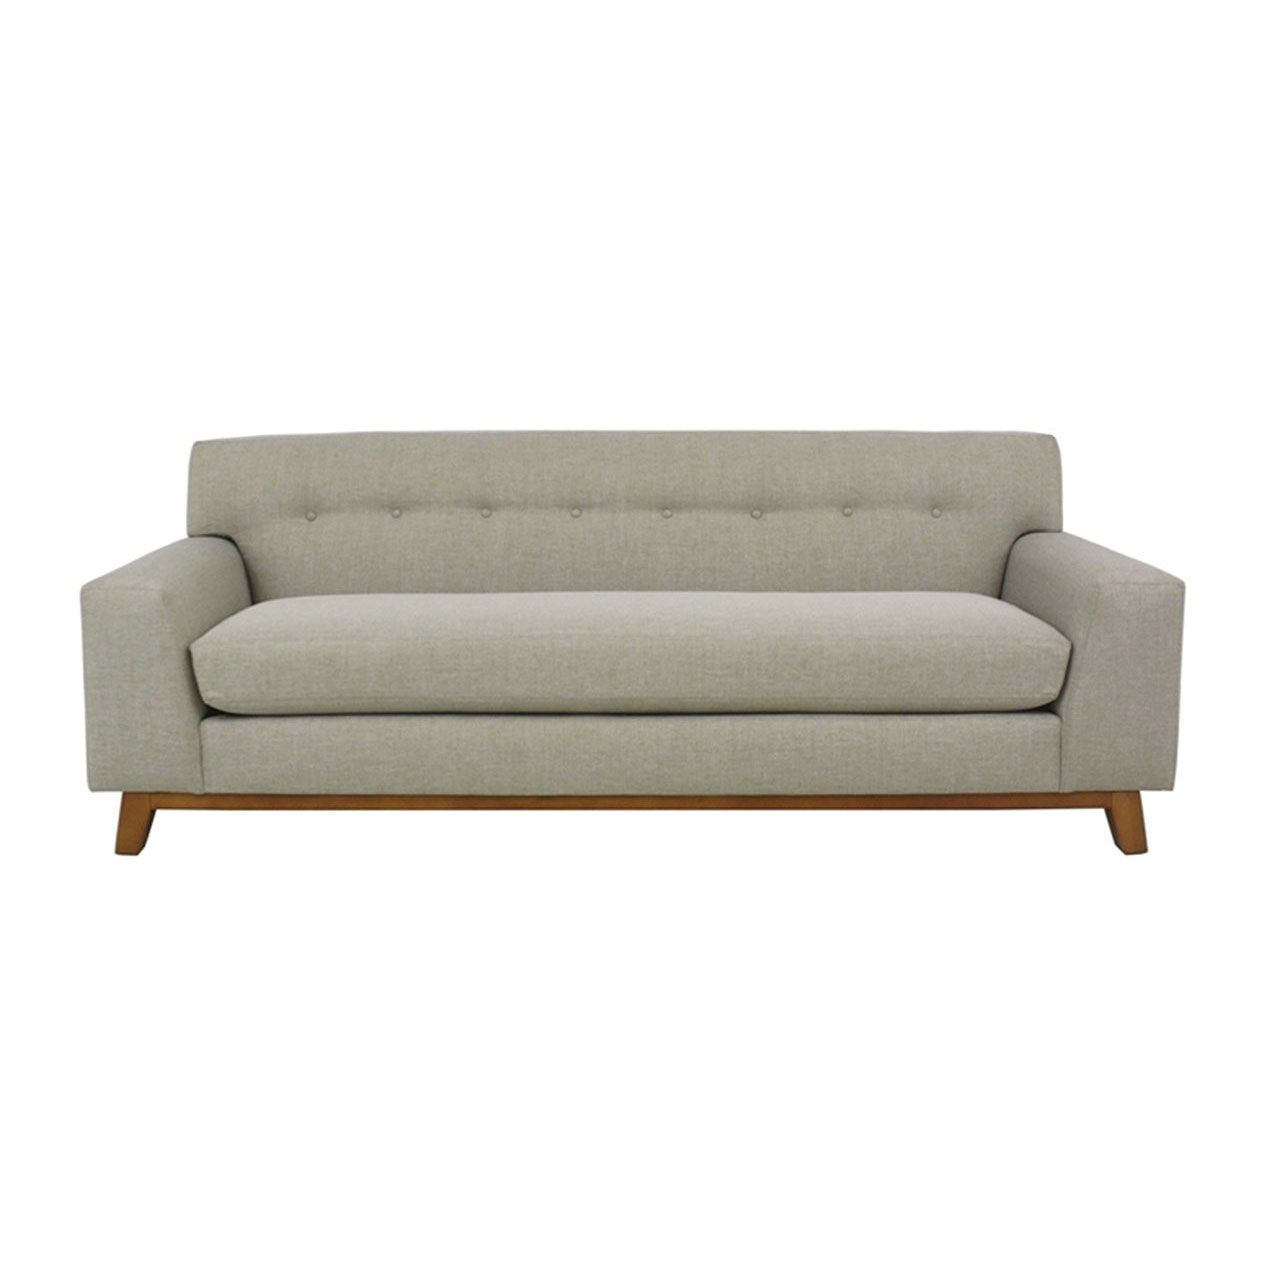 Furniture Upholstery Near Me Find Local Crypton Fabric Retailers Furniture Upholstery Furniture Sofa